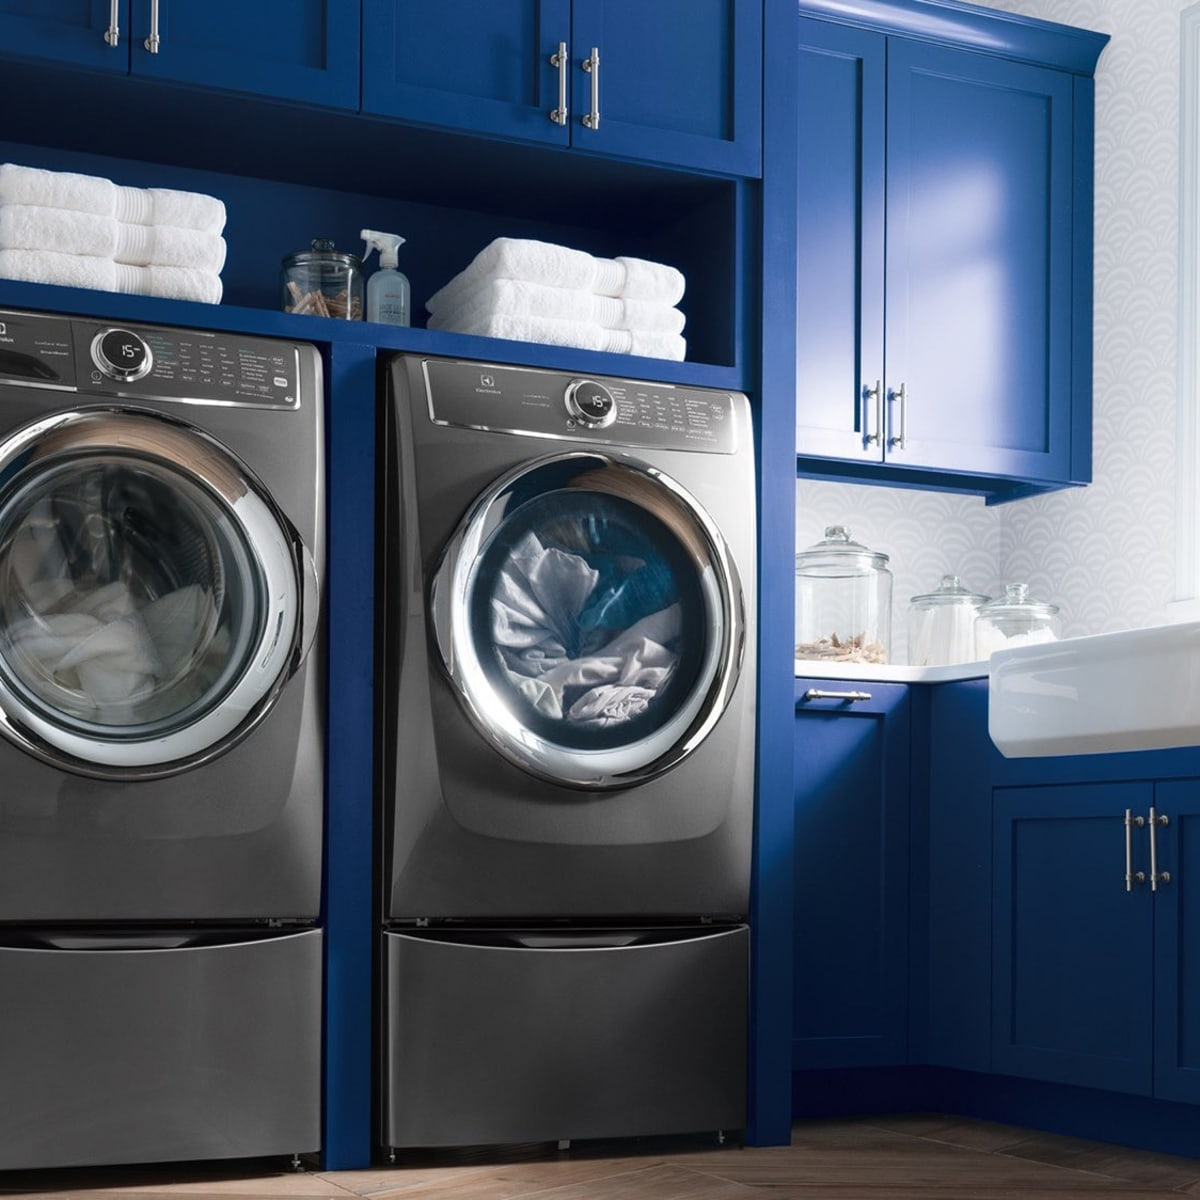 The Best Washing Machines of 2019 - Reviewed Laundry